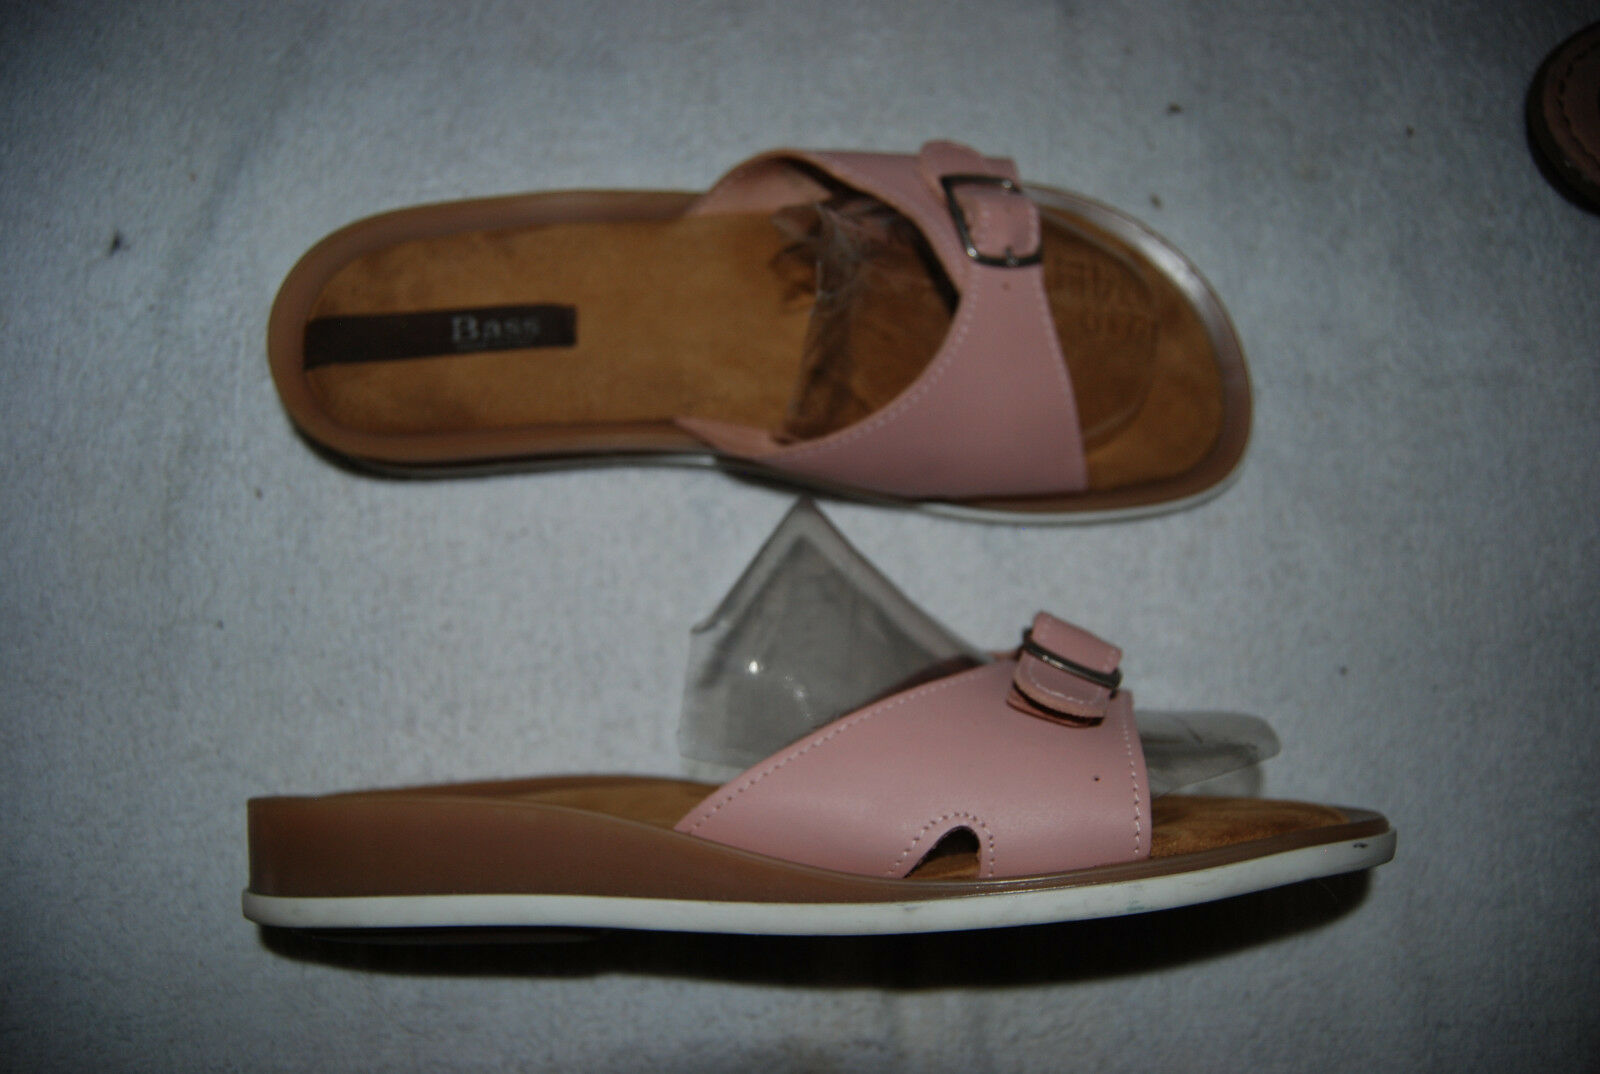 Pink Leather Open Toe w/Metal BASS Low Wedge Slides w/Metal Toe Buckle 11 M b6410d